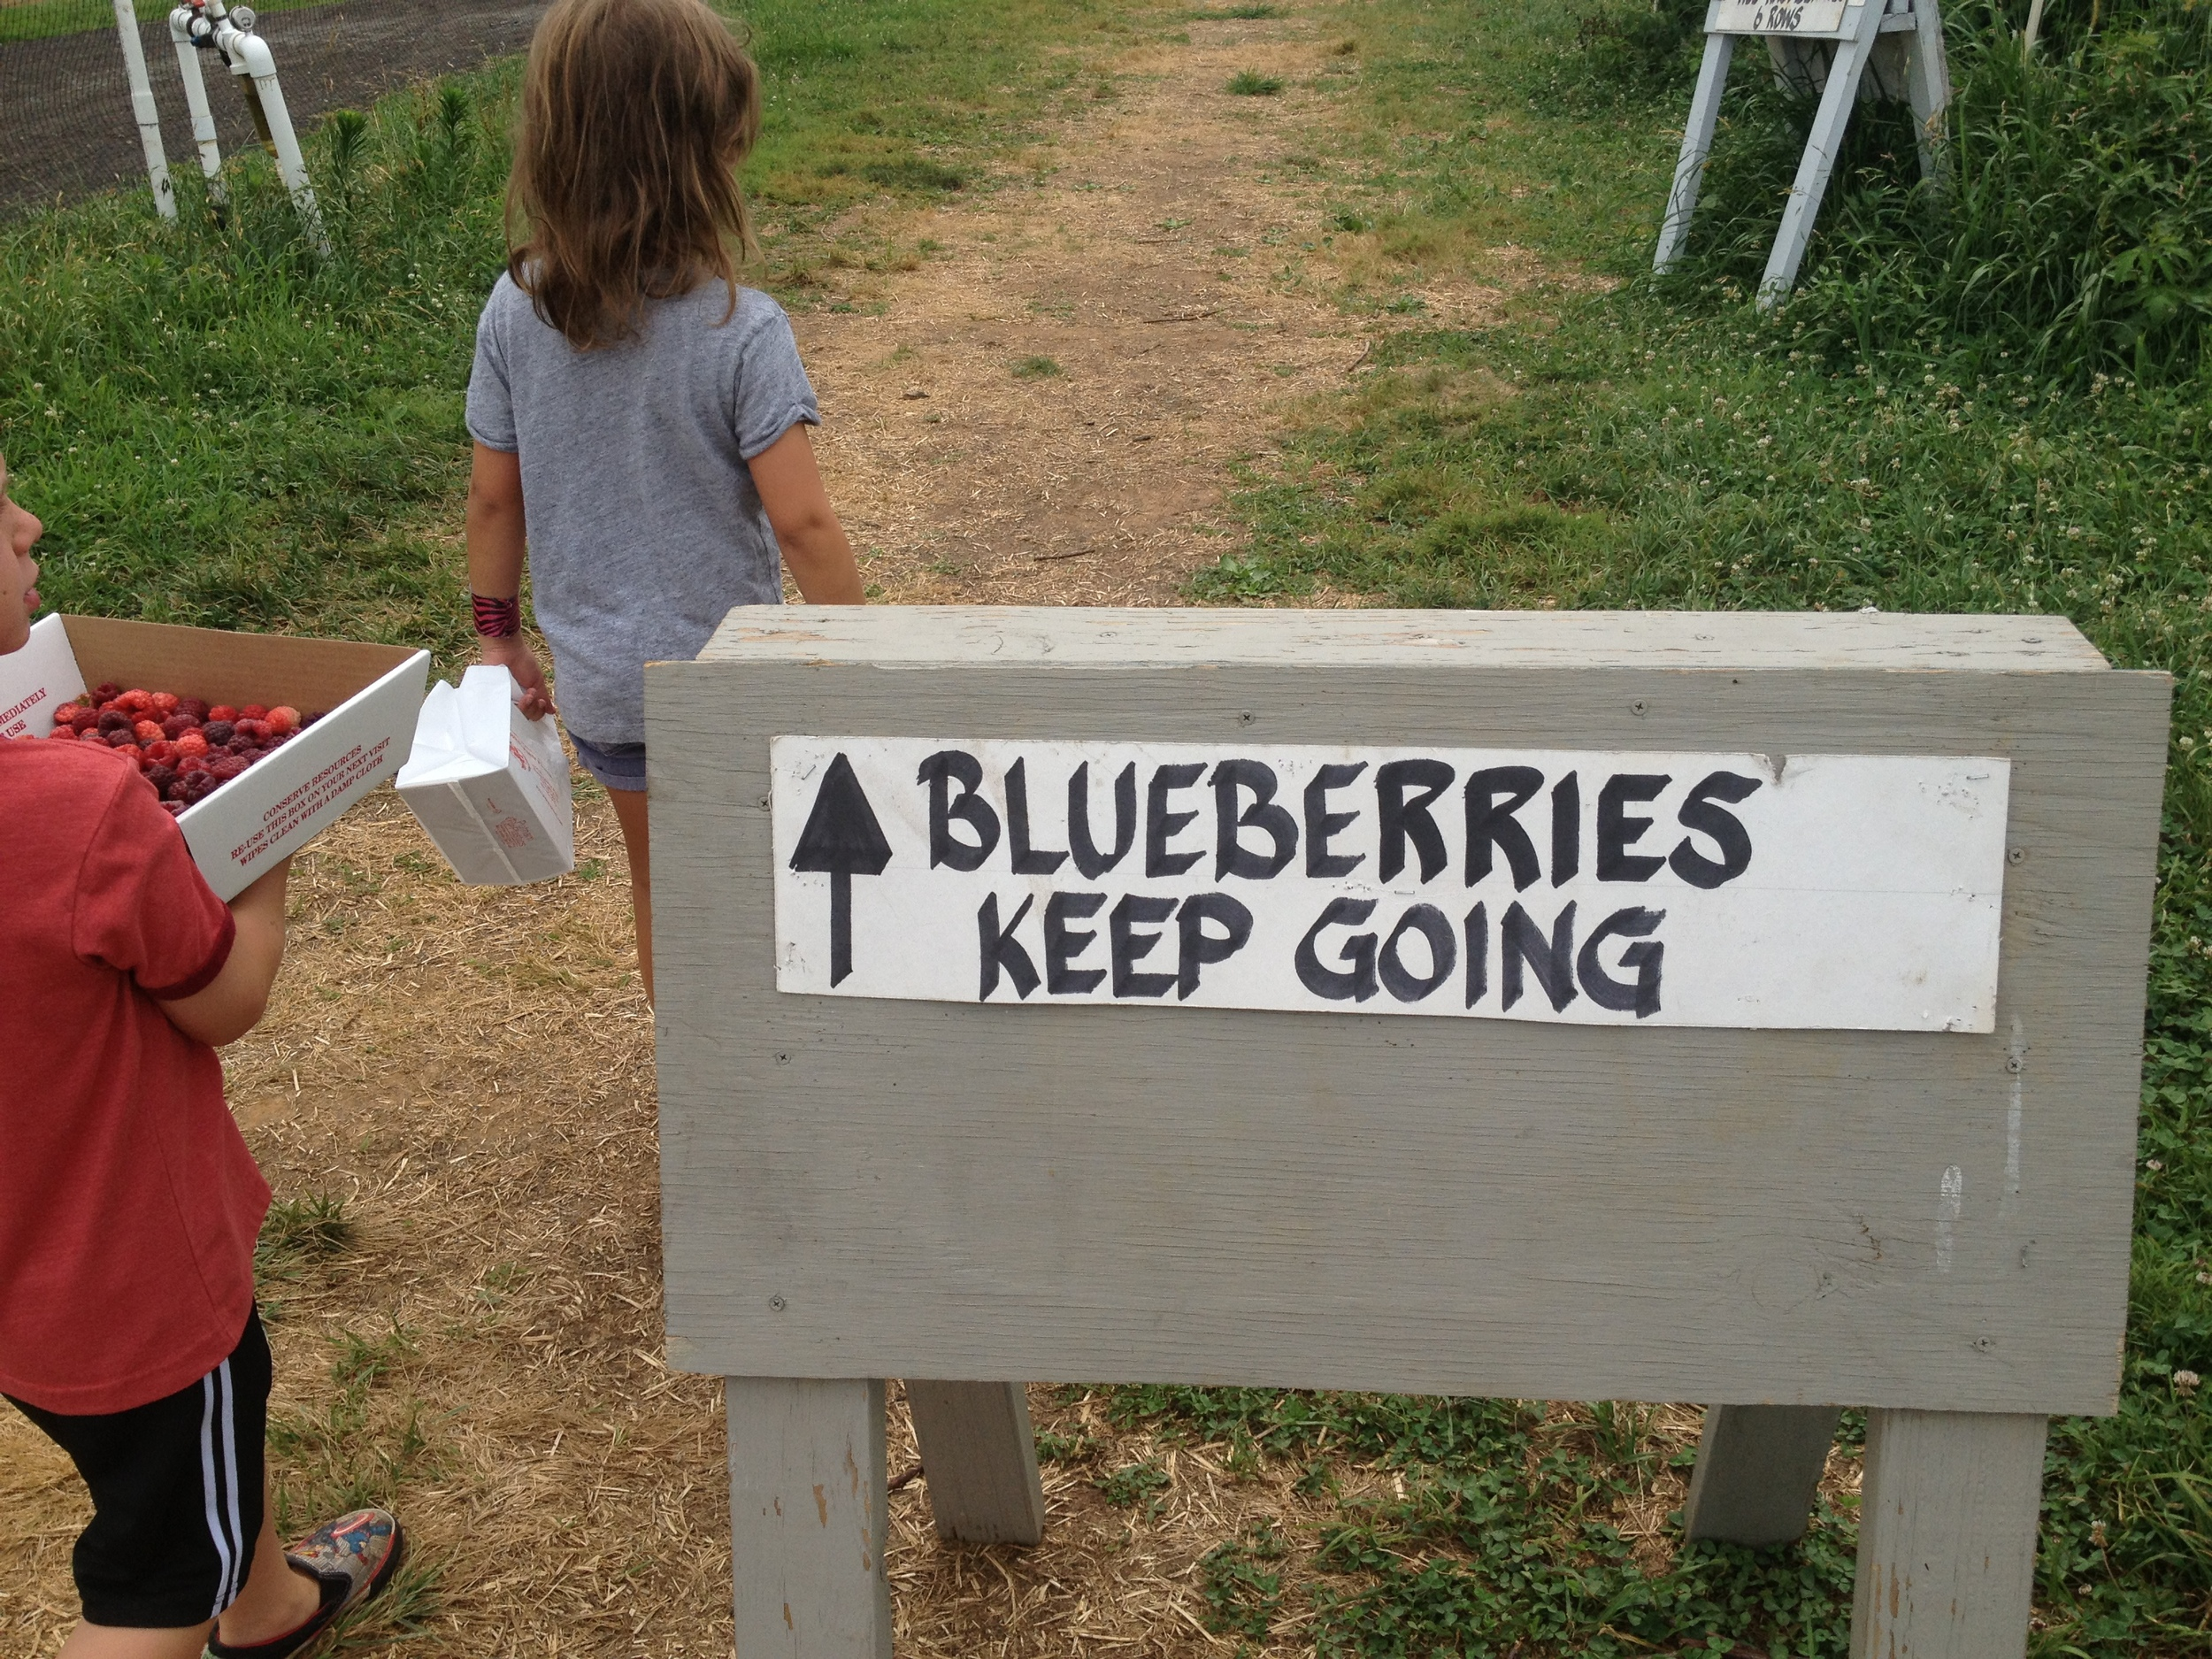 Blueberries are next